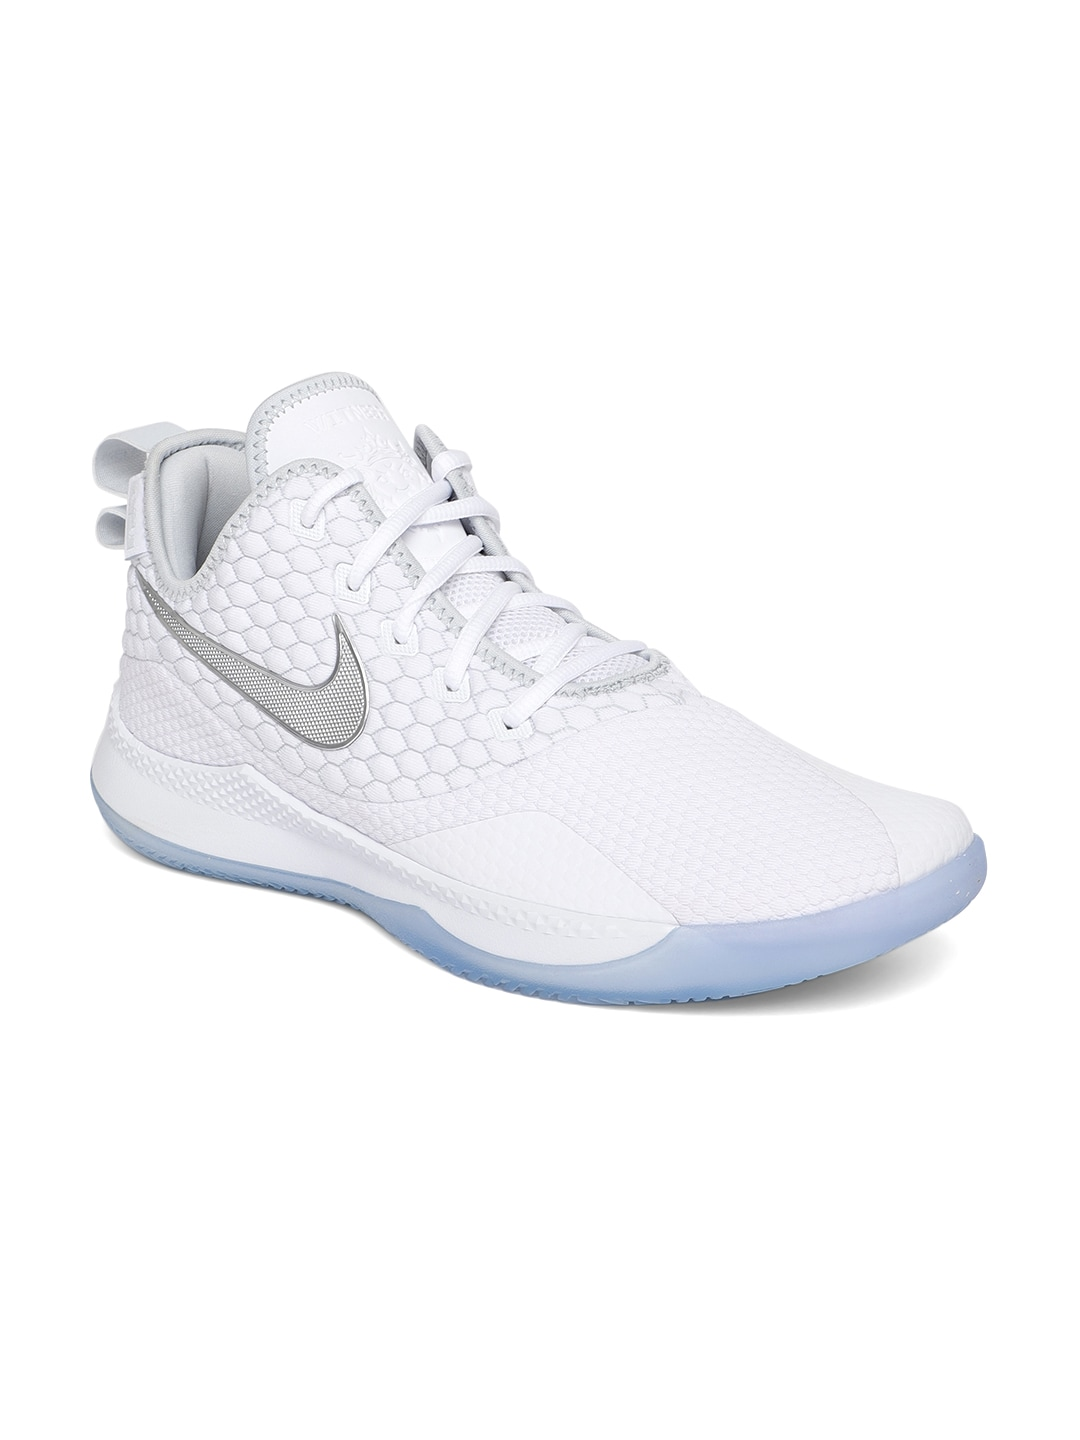 fcdc2b3079e93 Basket Ball Shoes - Buy Basket Ball Shoes Online